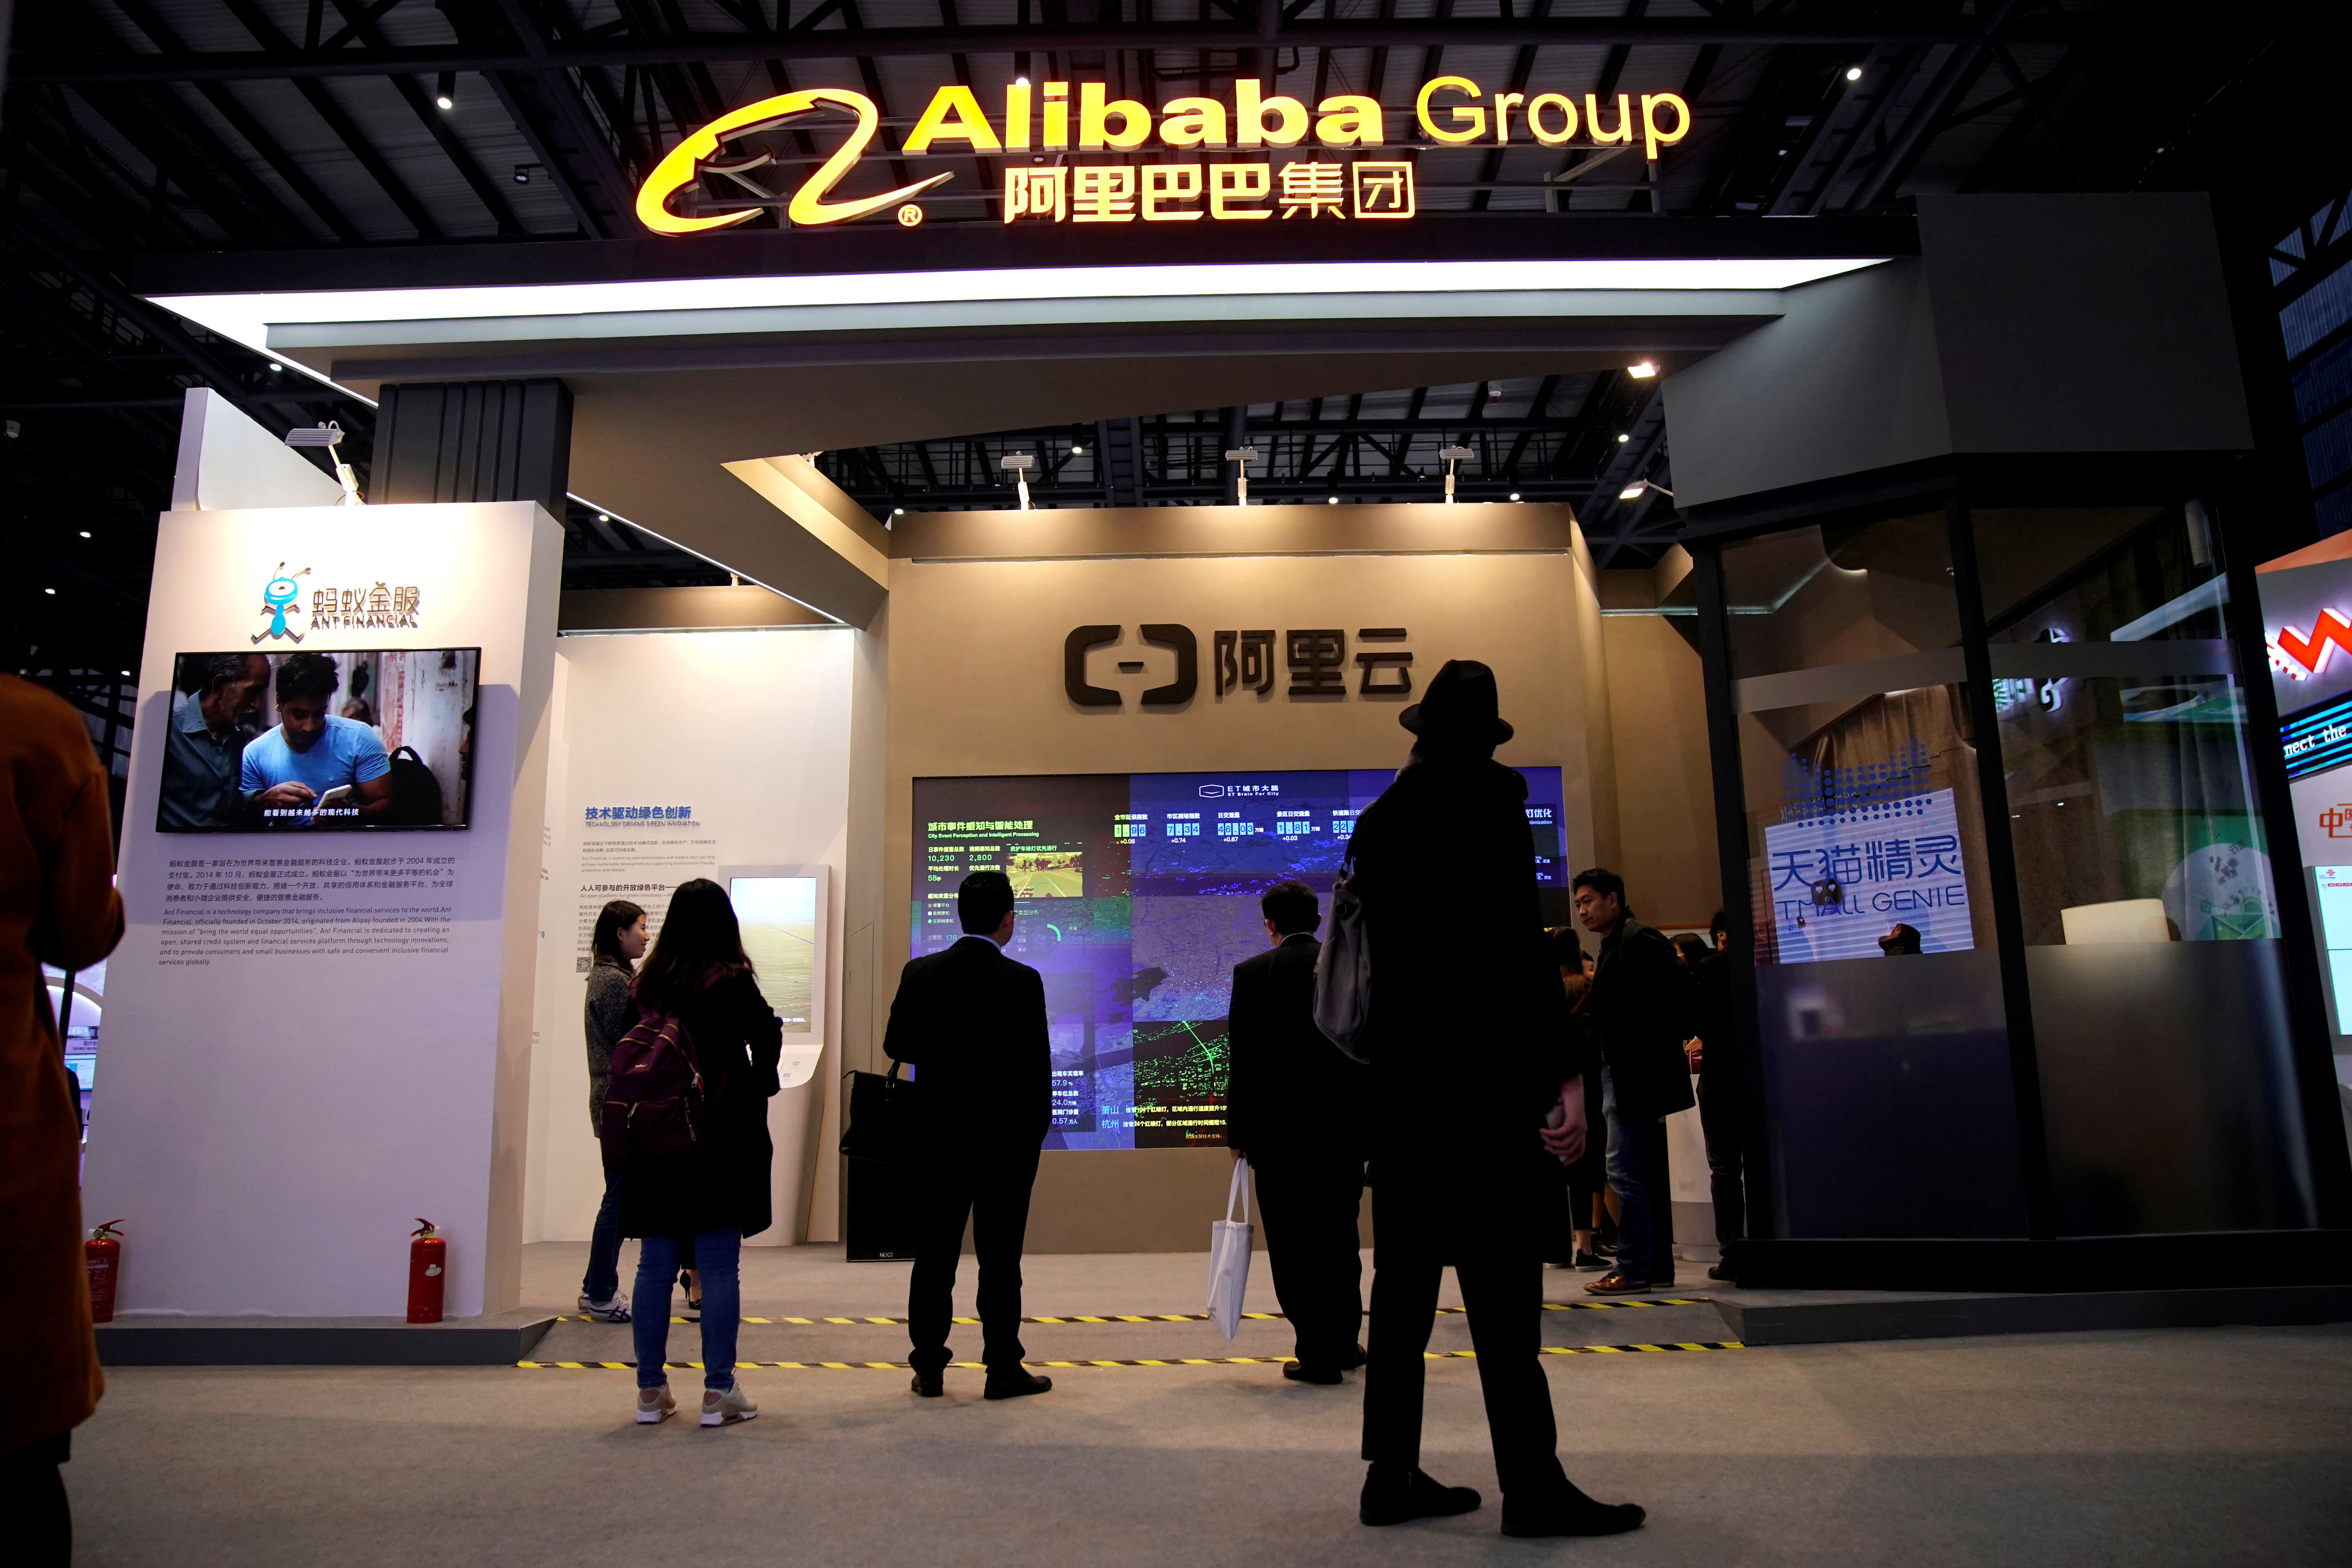 A sign of Alibaba Group is seen during the fourth World Internet Conference in Wuzhen, Zhejiang province, China, December 3, 2017.